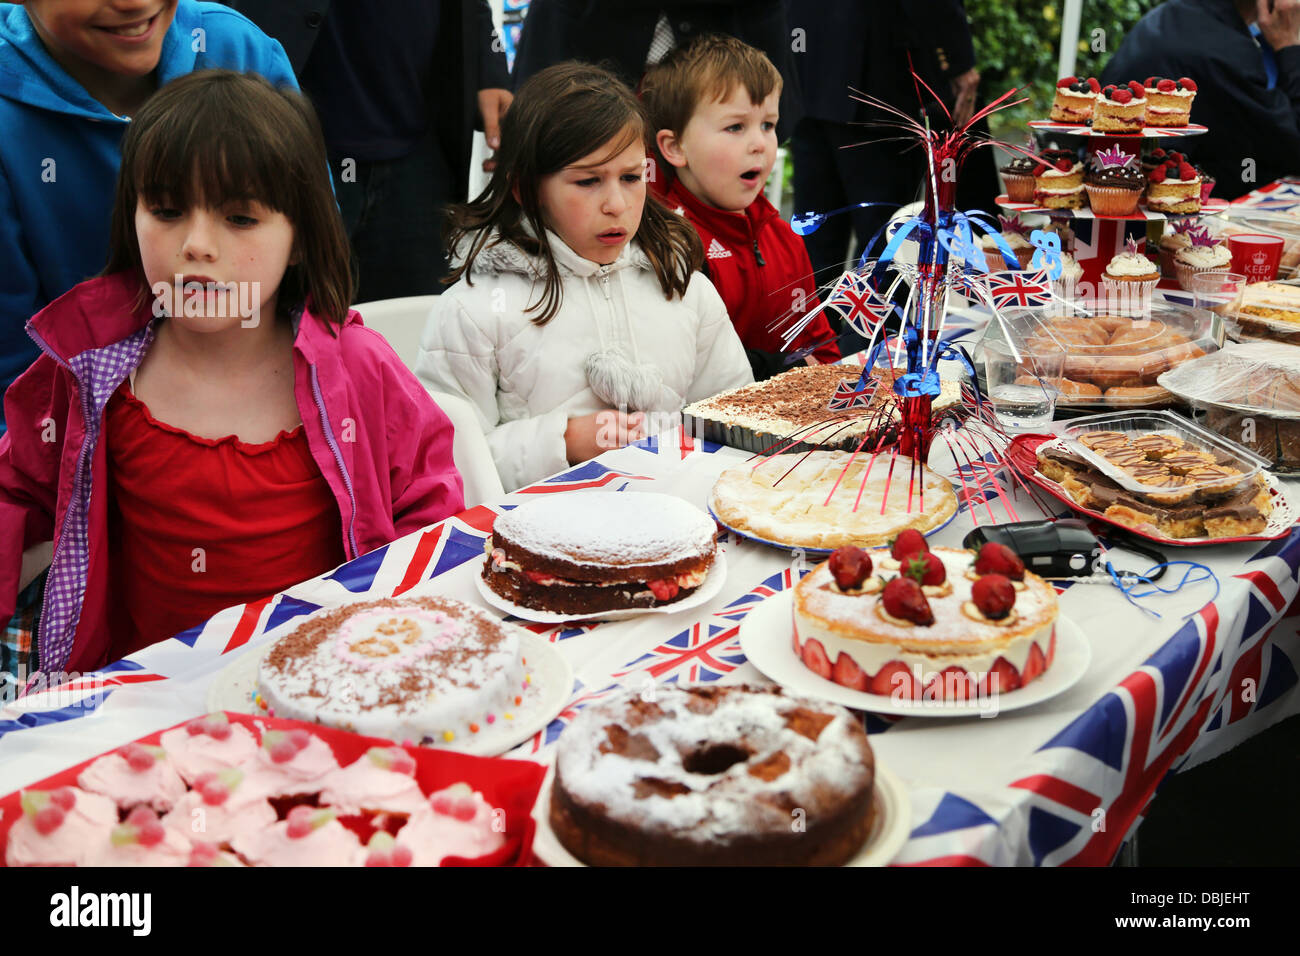 Children Looking At Cakes During Cake Competition At Street Party During Queen's Diamond Jubilee Surrey England - Stock Image